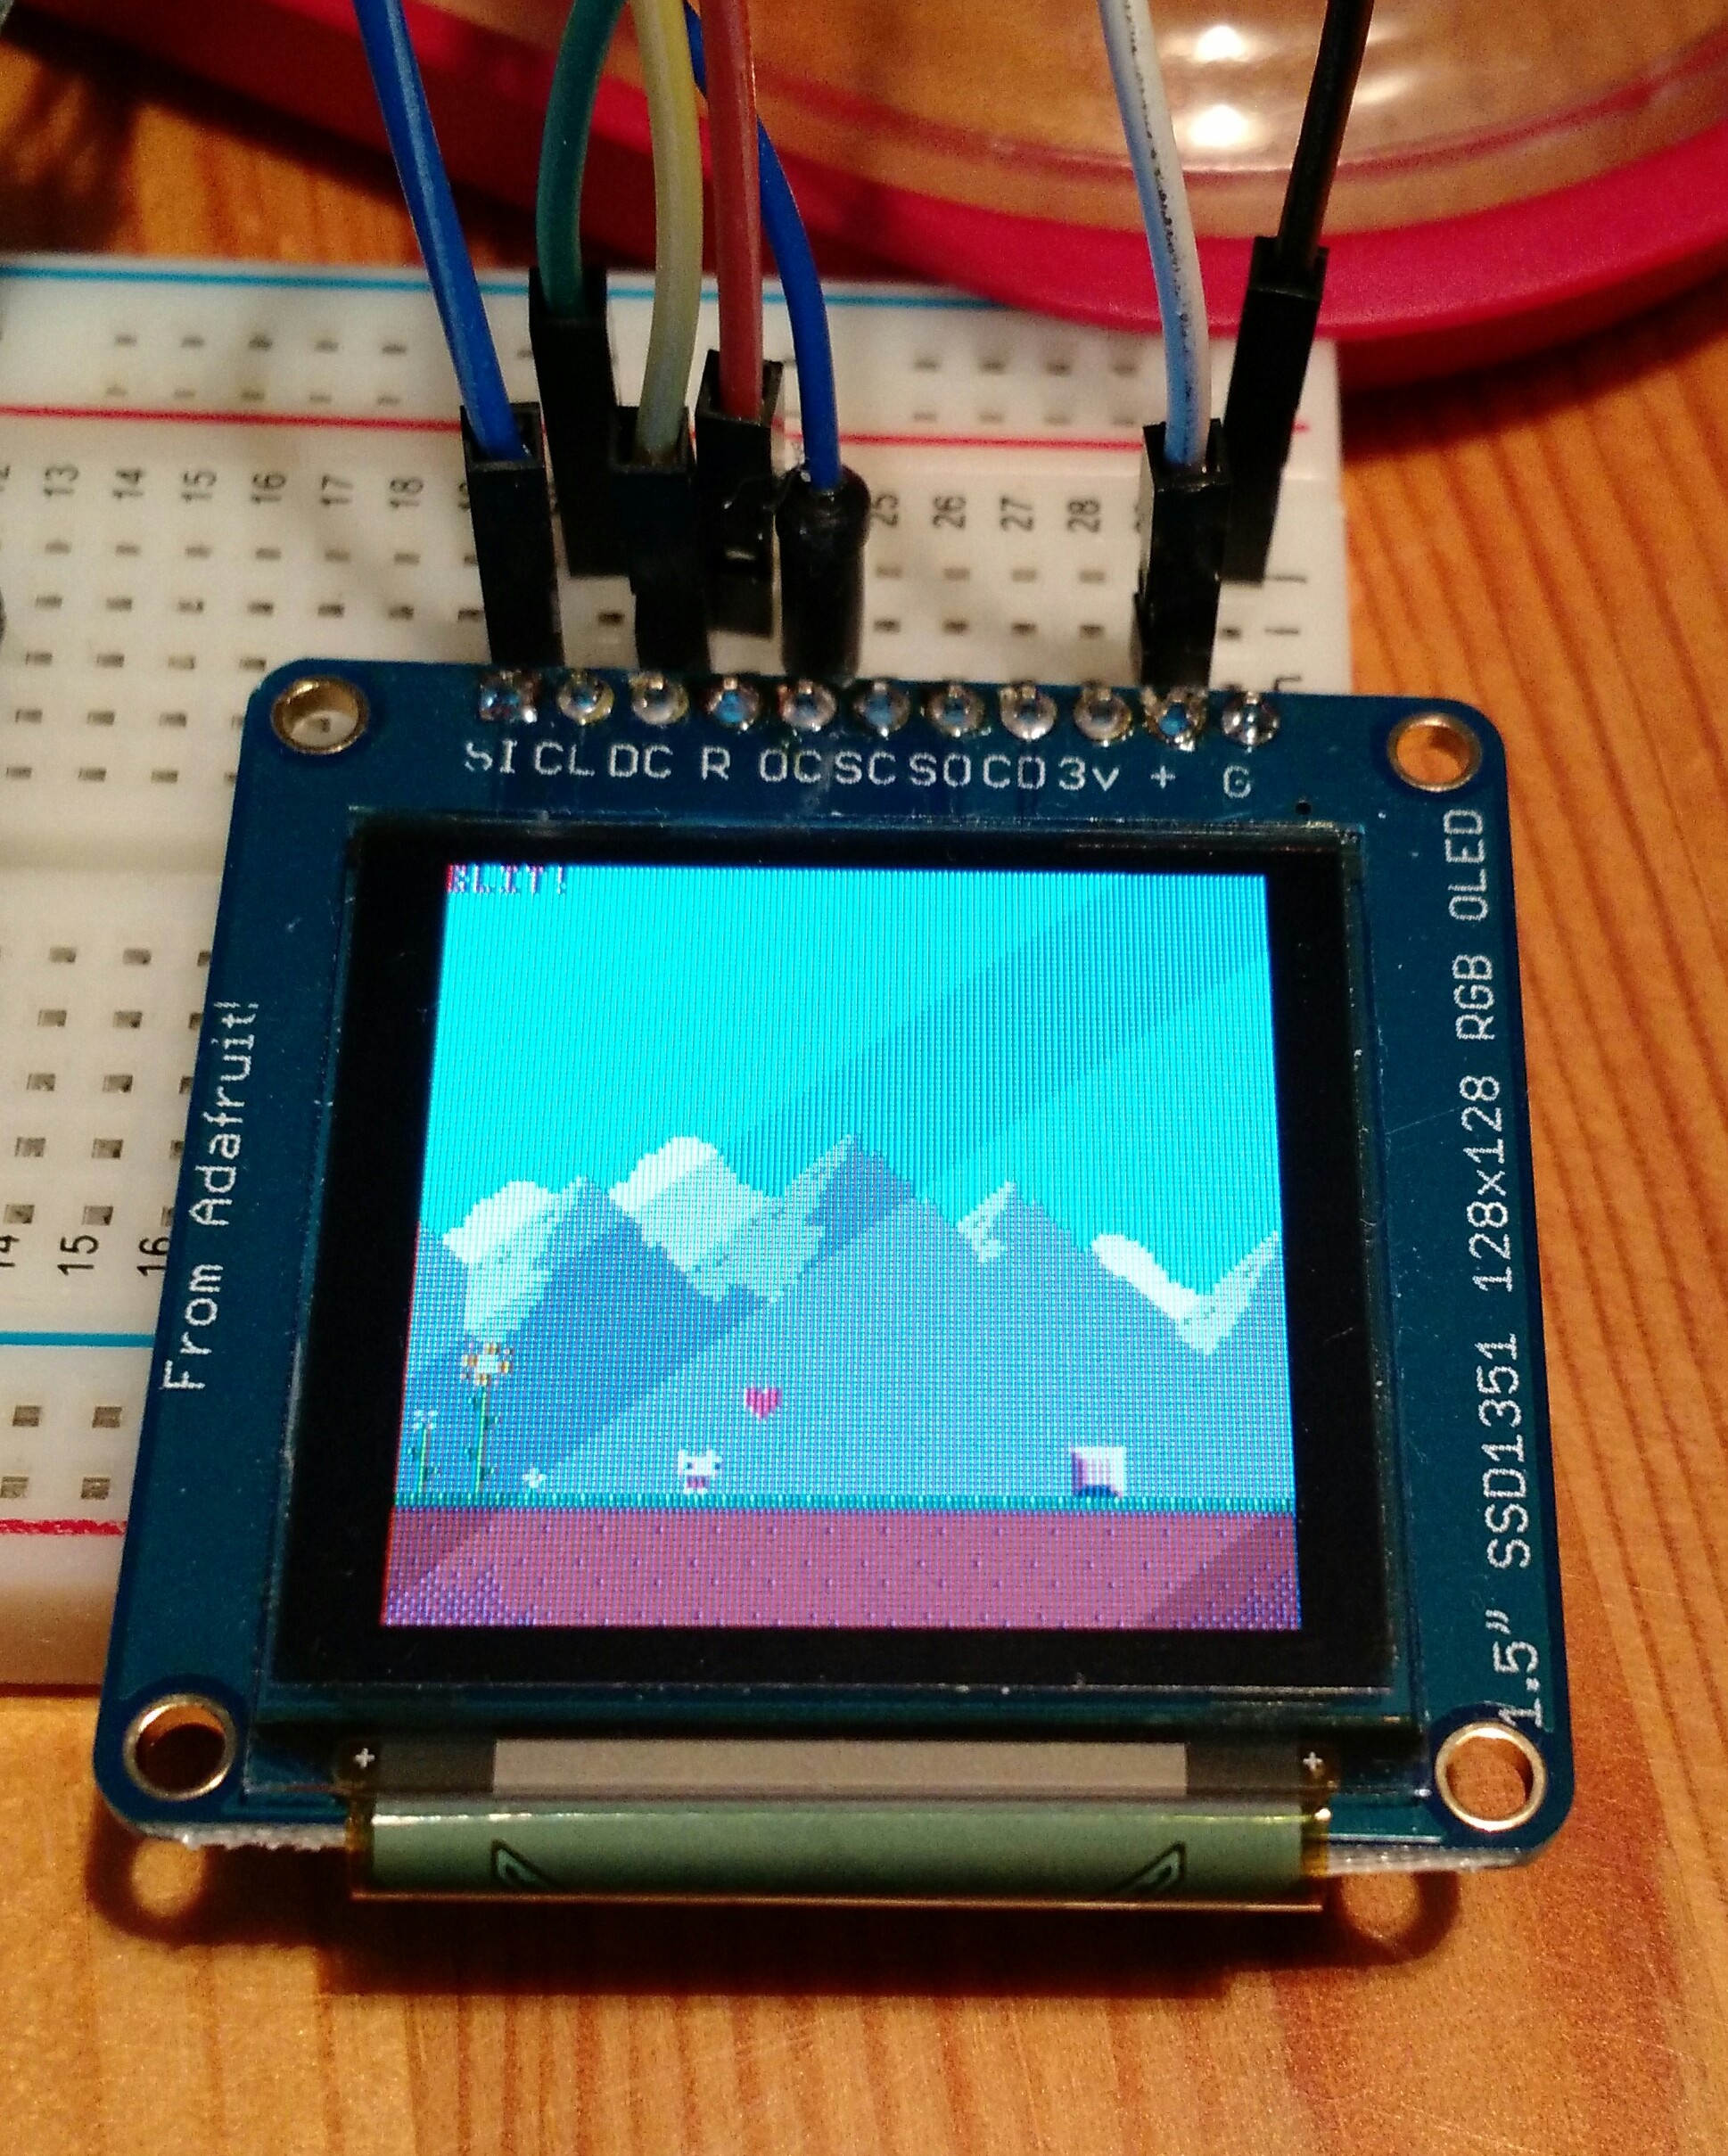 Raspberry Display Driver Ssd1351 Wiringpi Spi Functions I Got An Idea The Other Day To Write A In Pico8 Using Gpio Pins And Here It Is Cart Replaces Flip Function With Custom One